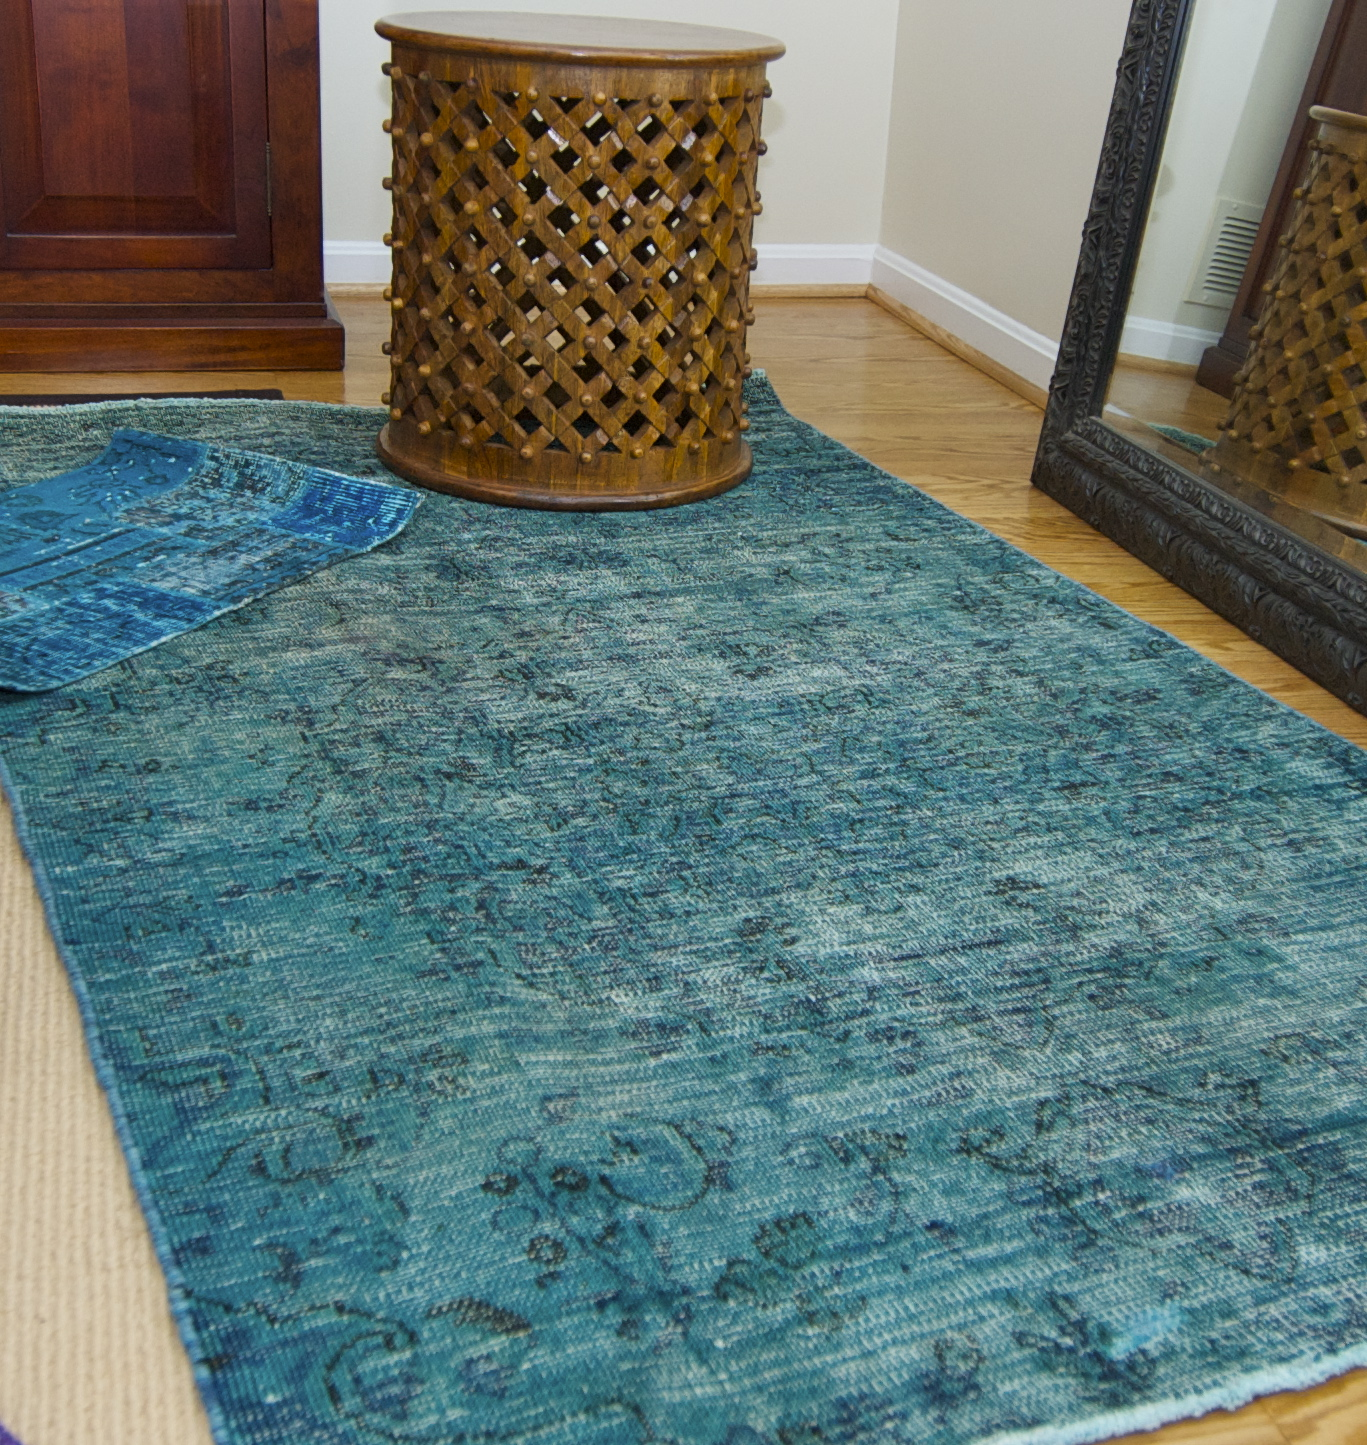 Design Overdyed Rugs pretty inspirational recent projects over dyed rugs and oriental rugs